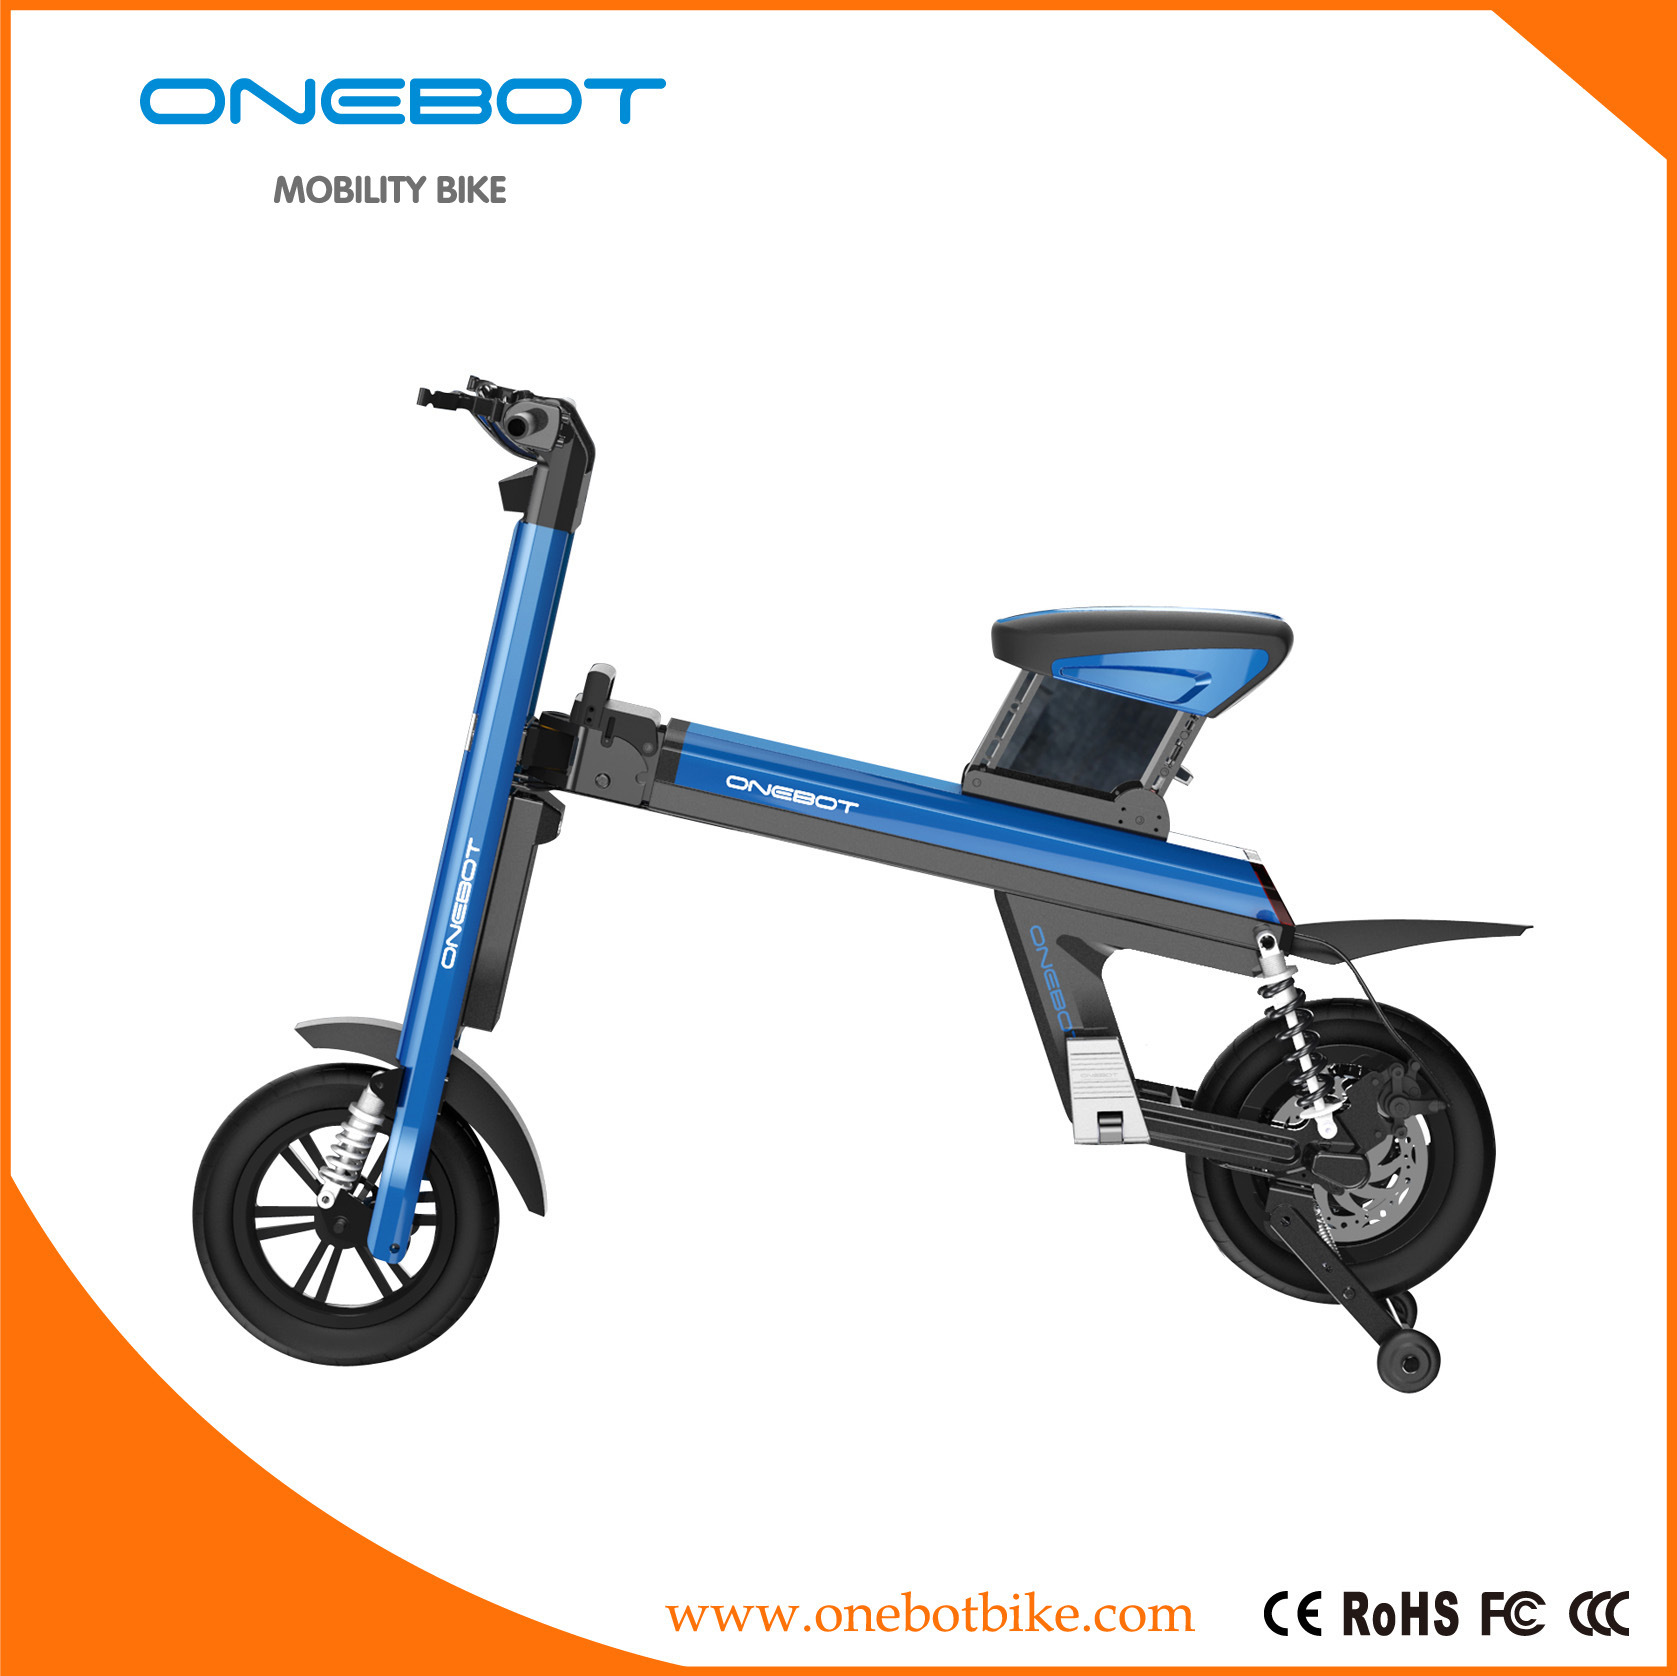 Electric Bike, Electric Motorcycle, Folding Ebike Panasonic Battery 500W Motor, Urban Mobility Bicycle